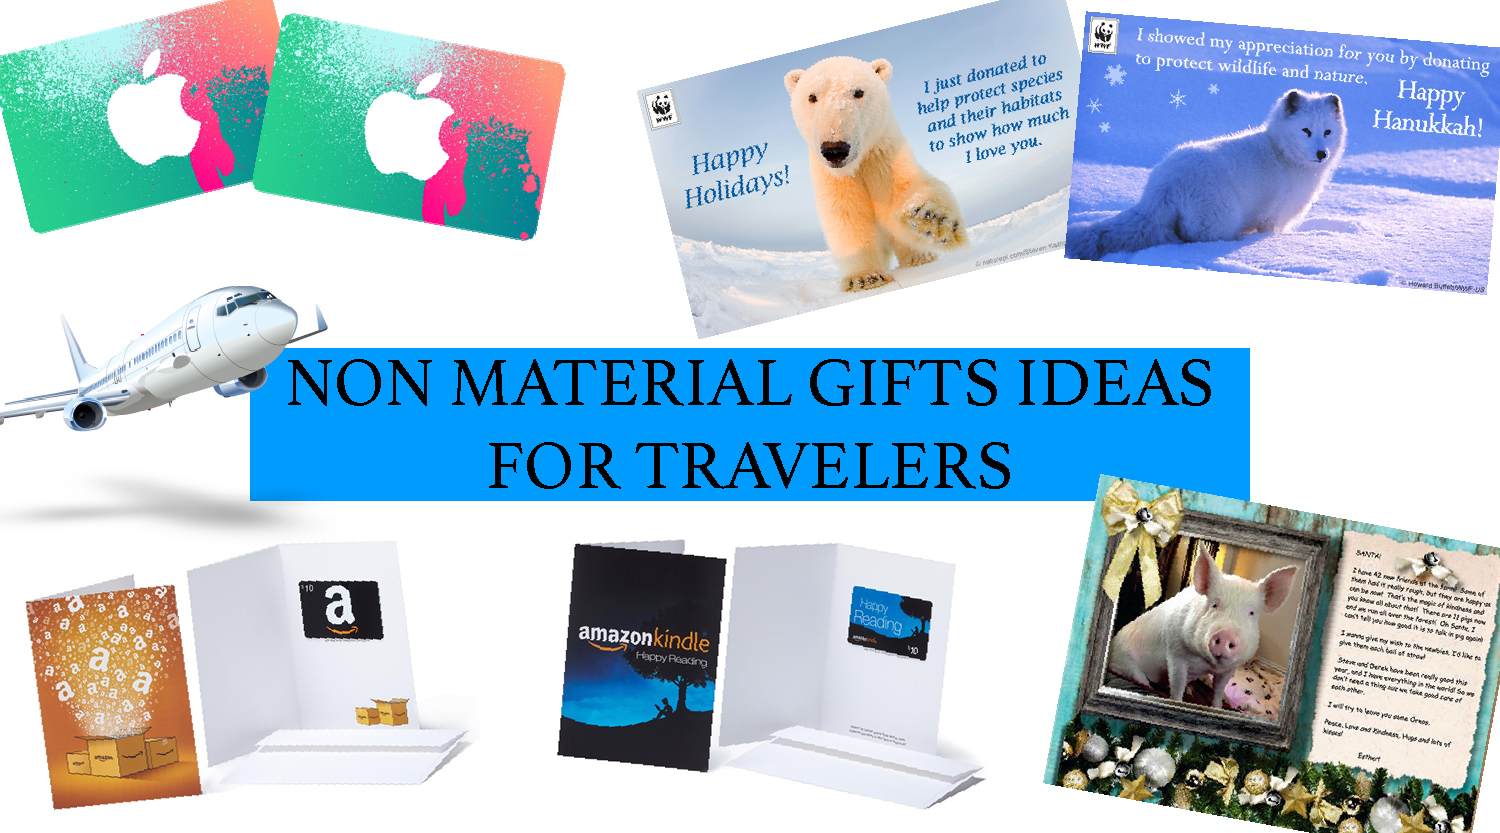 Non material gifts ideas for travelers for Good gifts for a traveler